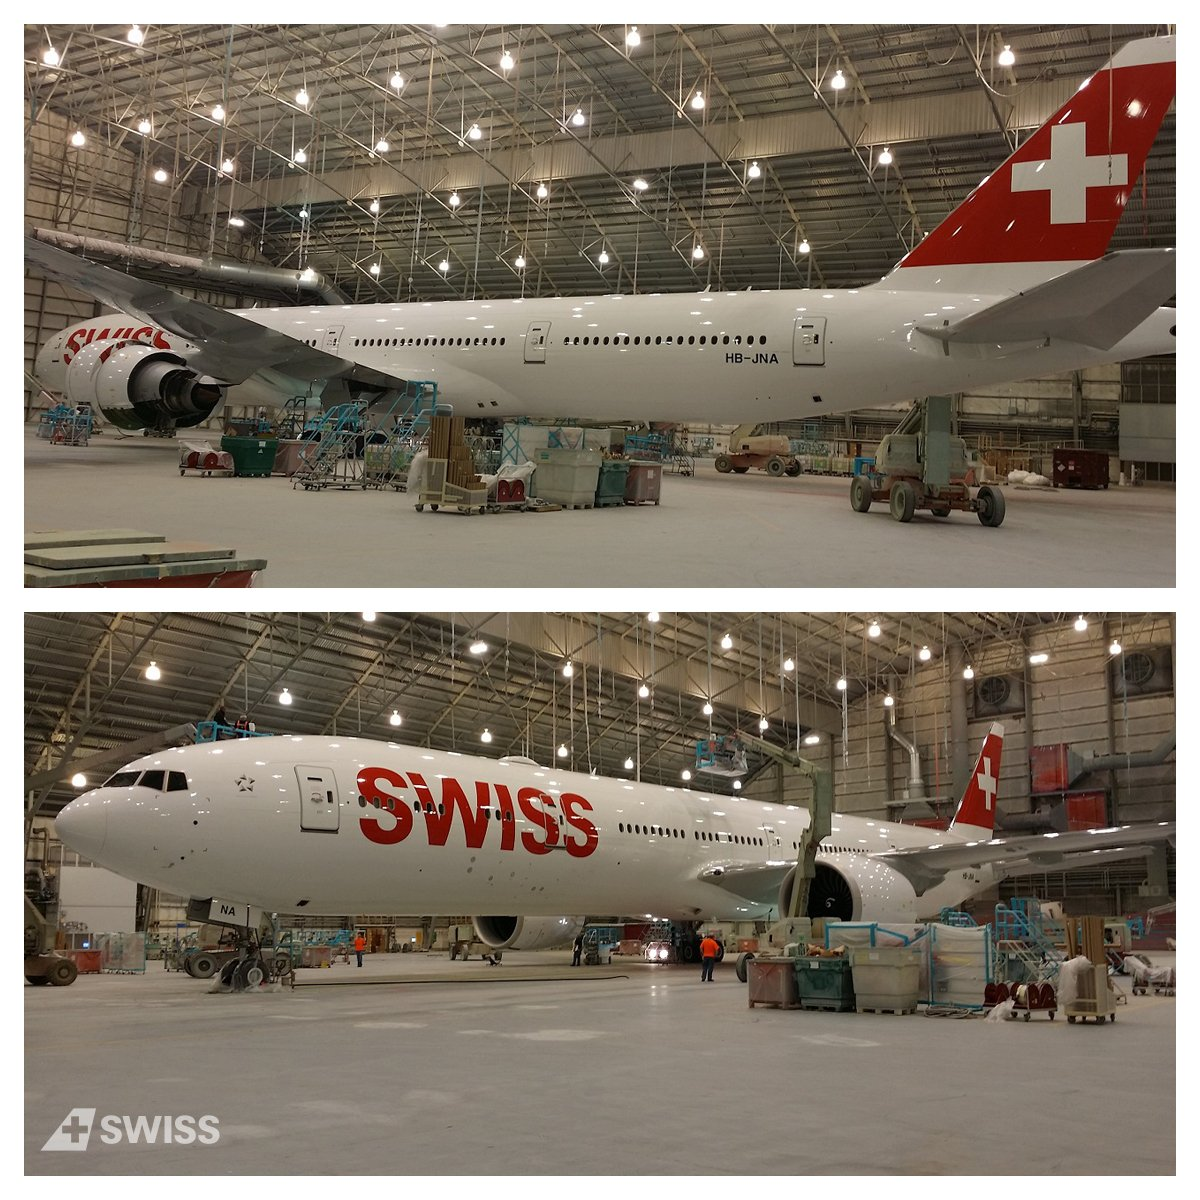 Excited to present you the final outfit of the B777. A whopping 416l of paint were used for this amazing guise. https://t.co/16WnS1vDad